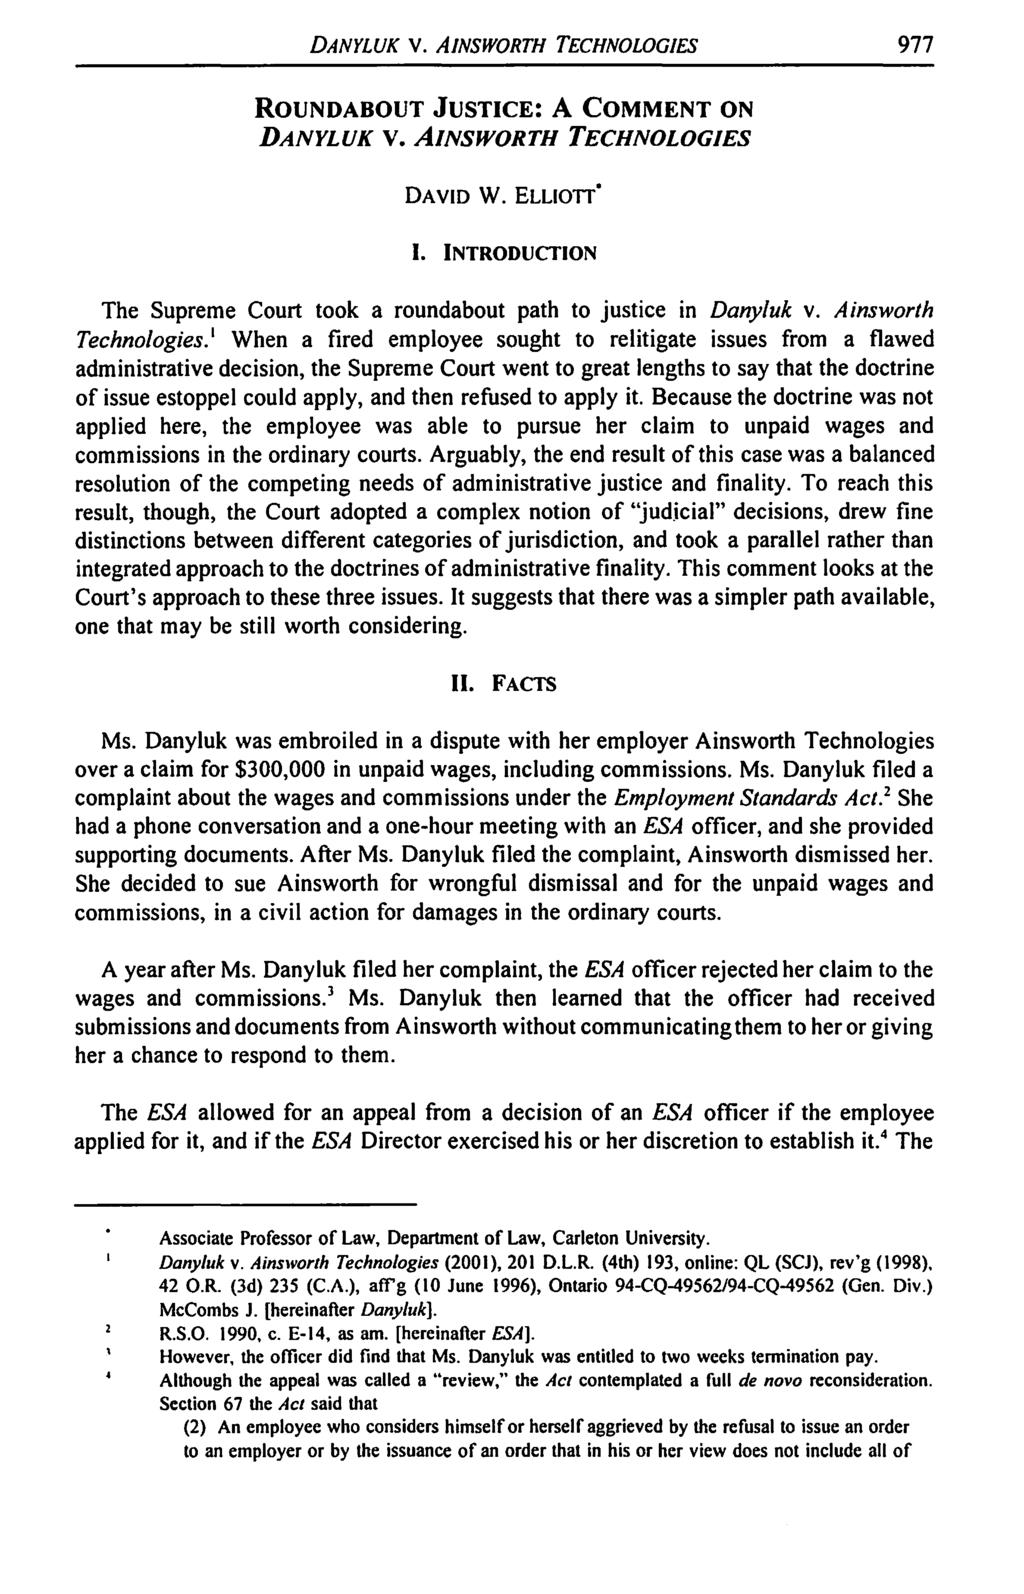 DANYLUK V. AINSWORTH TECHNOLOGIES 977 ROUNDABOUT JUSTICE: A COMMENT ON DANYLUK V. AINSWORTH TECHNOLOGIES DAVID W. ELLIOlT I.